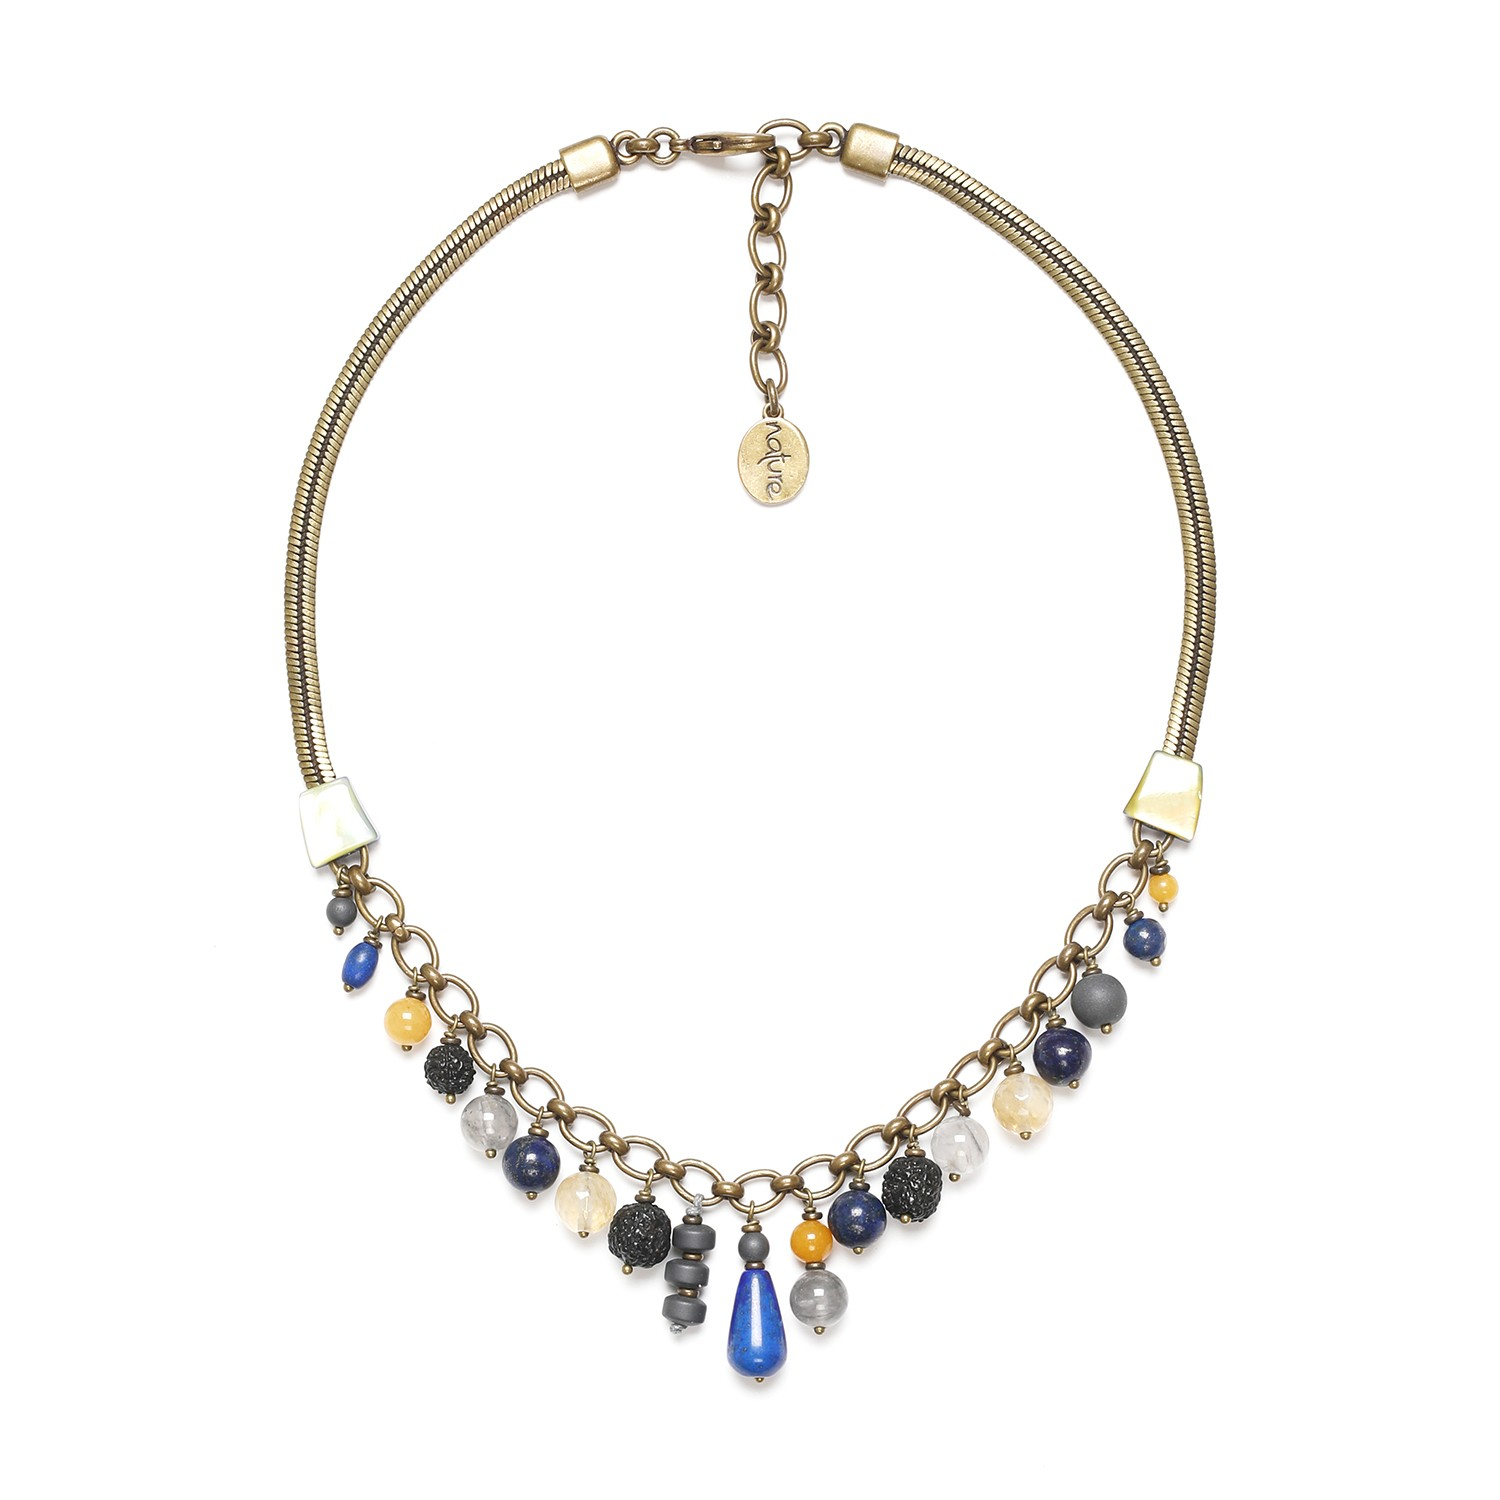 BLUE TRIBE collier pampilles